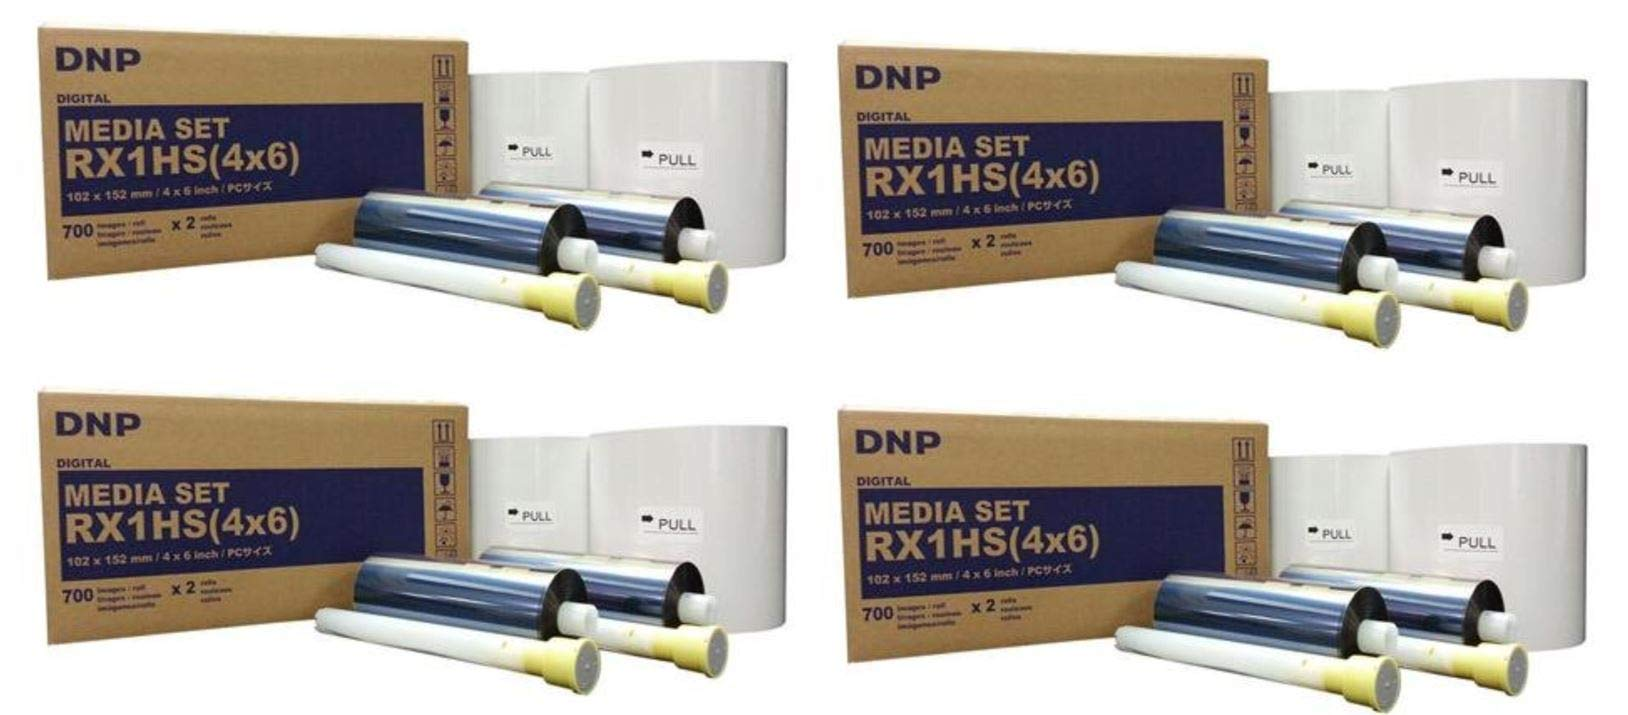 4 Cases of RX1HS 4x6 Printer Media - 1400 Prints Each - Total 5600 Prints Shipped from KOBIS - A DNP Authorized reseller